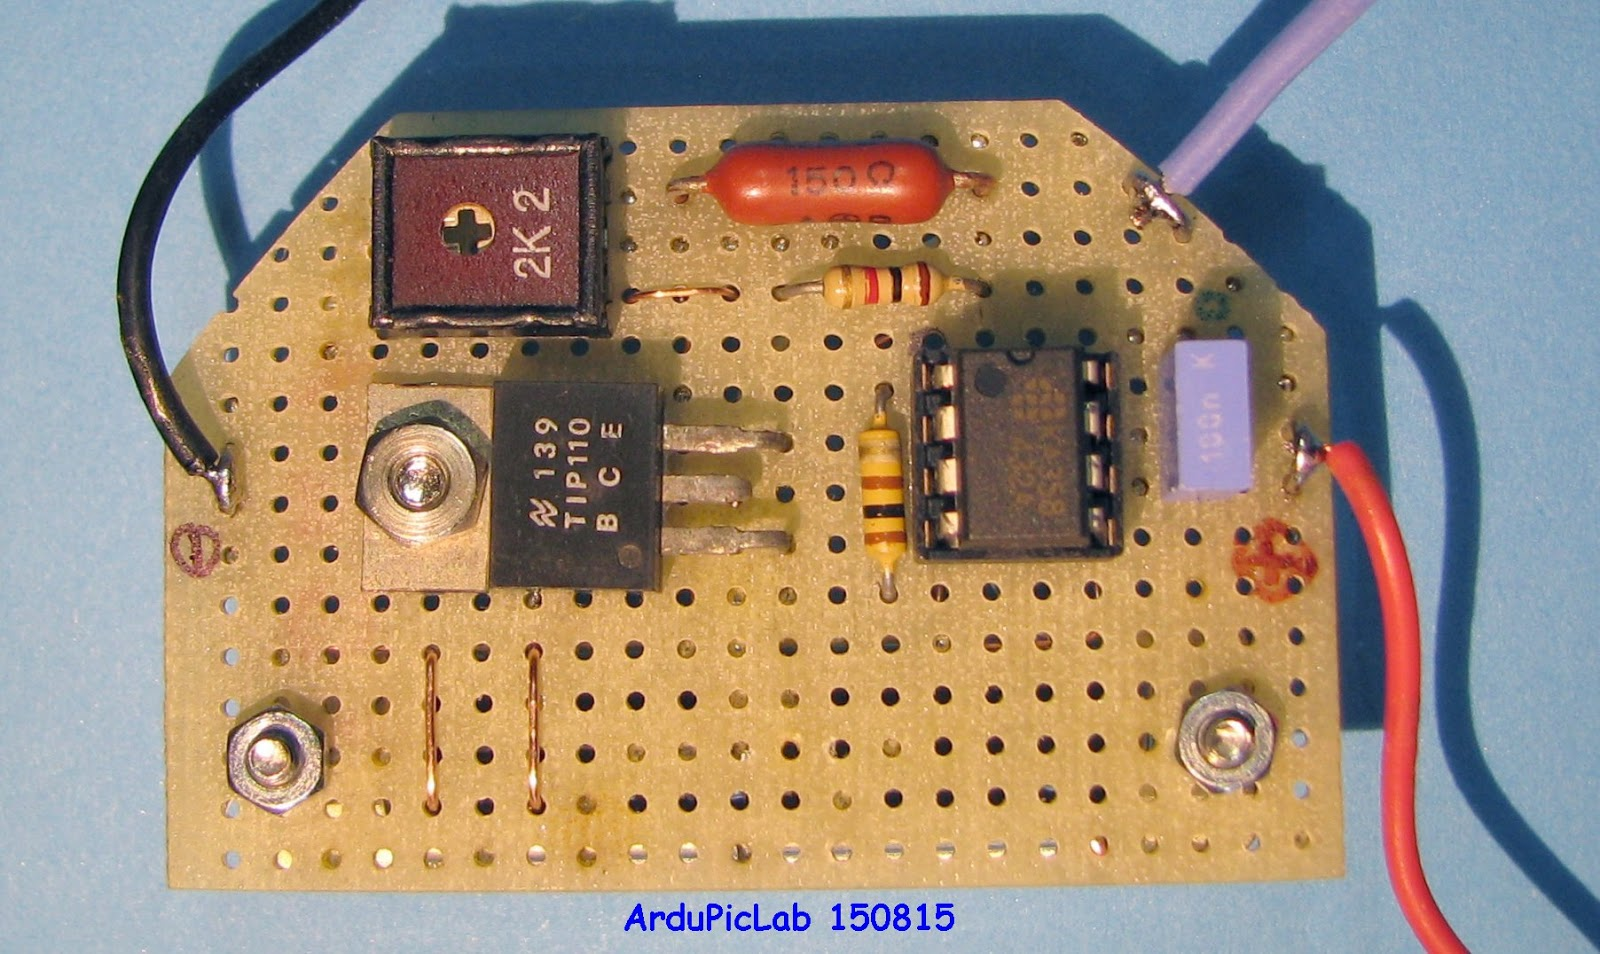 Ardupiclab August 2015 The Figure Shows Connections For Db25 Connectors Use Table To Test Circuit I Wrote A Simple Program That Sends Dac0 Of Arduino Due Values N According 051210242048307235844095